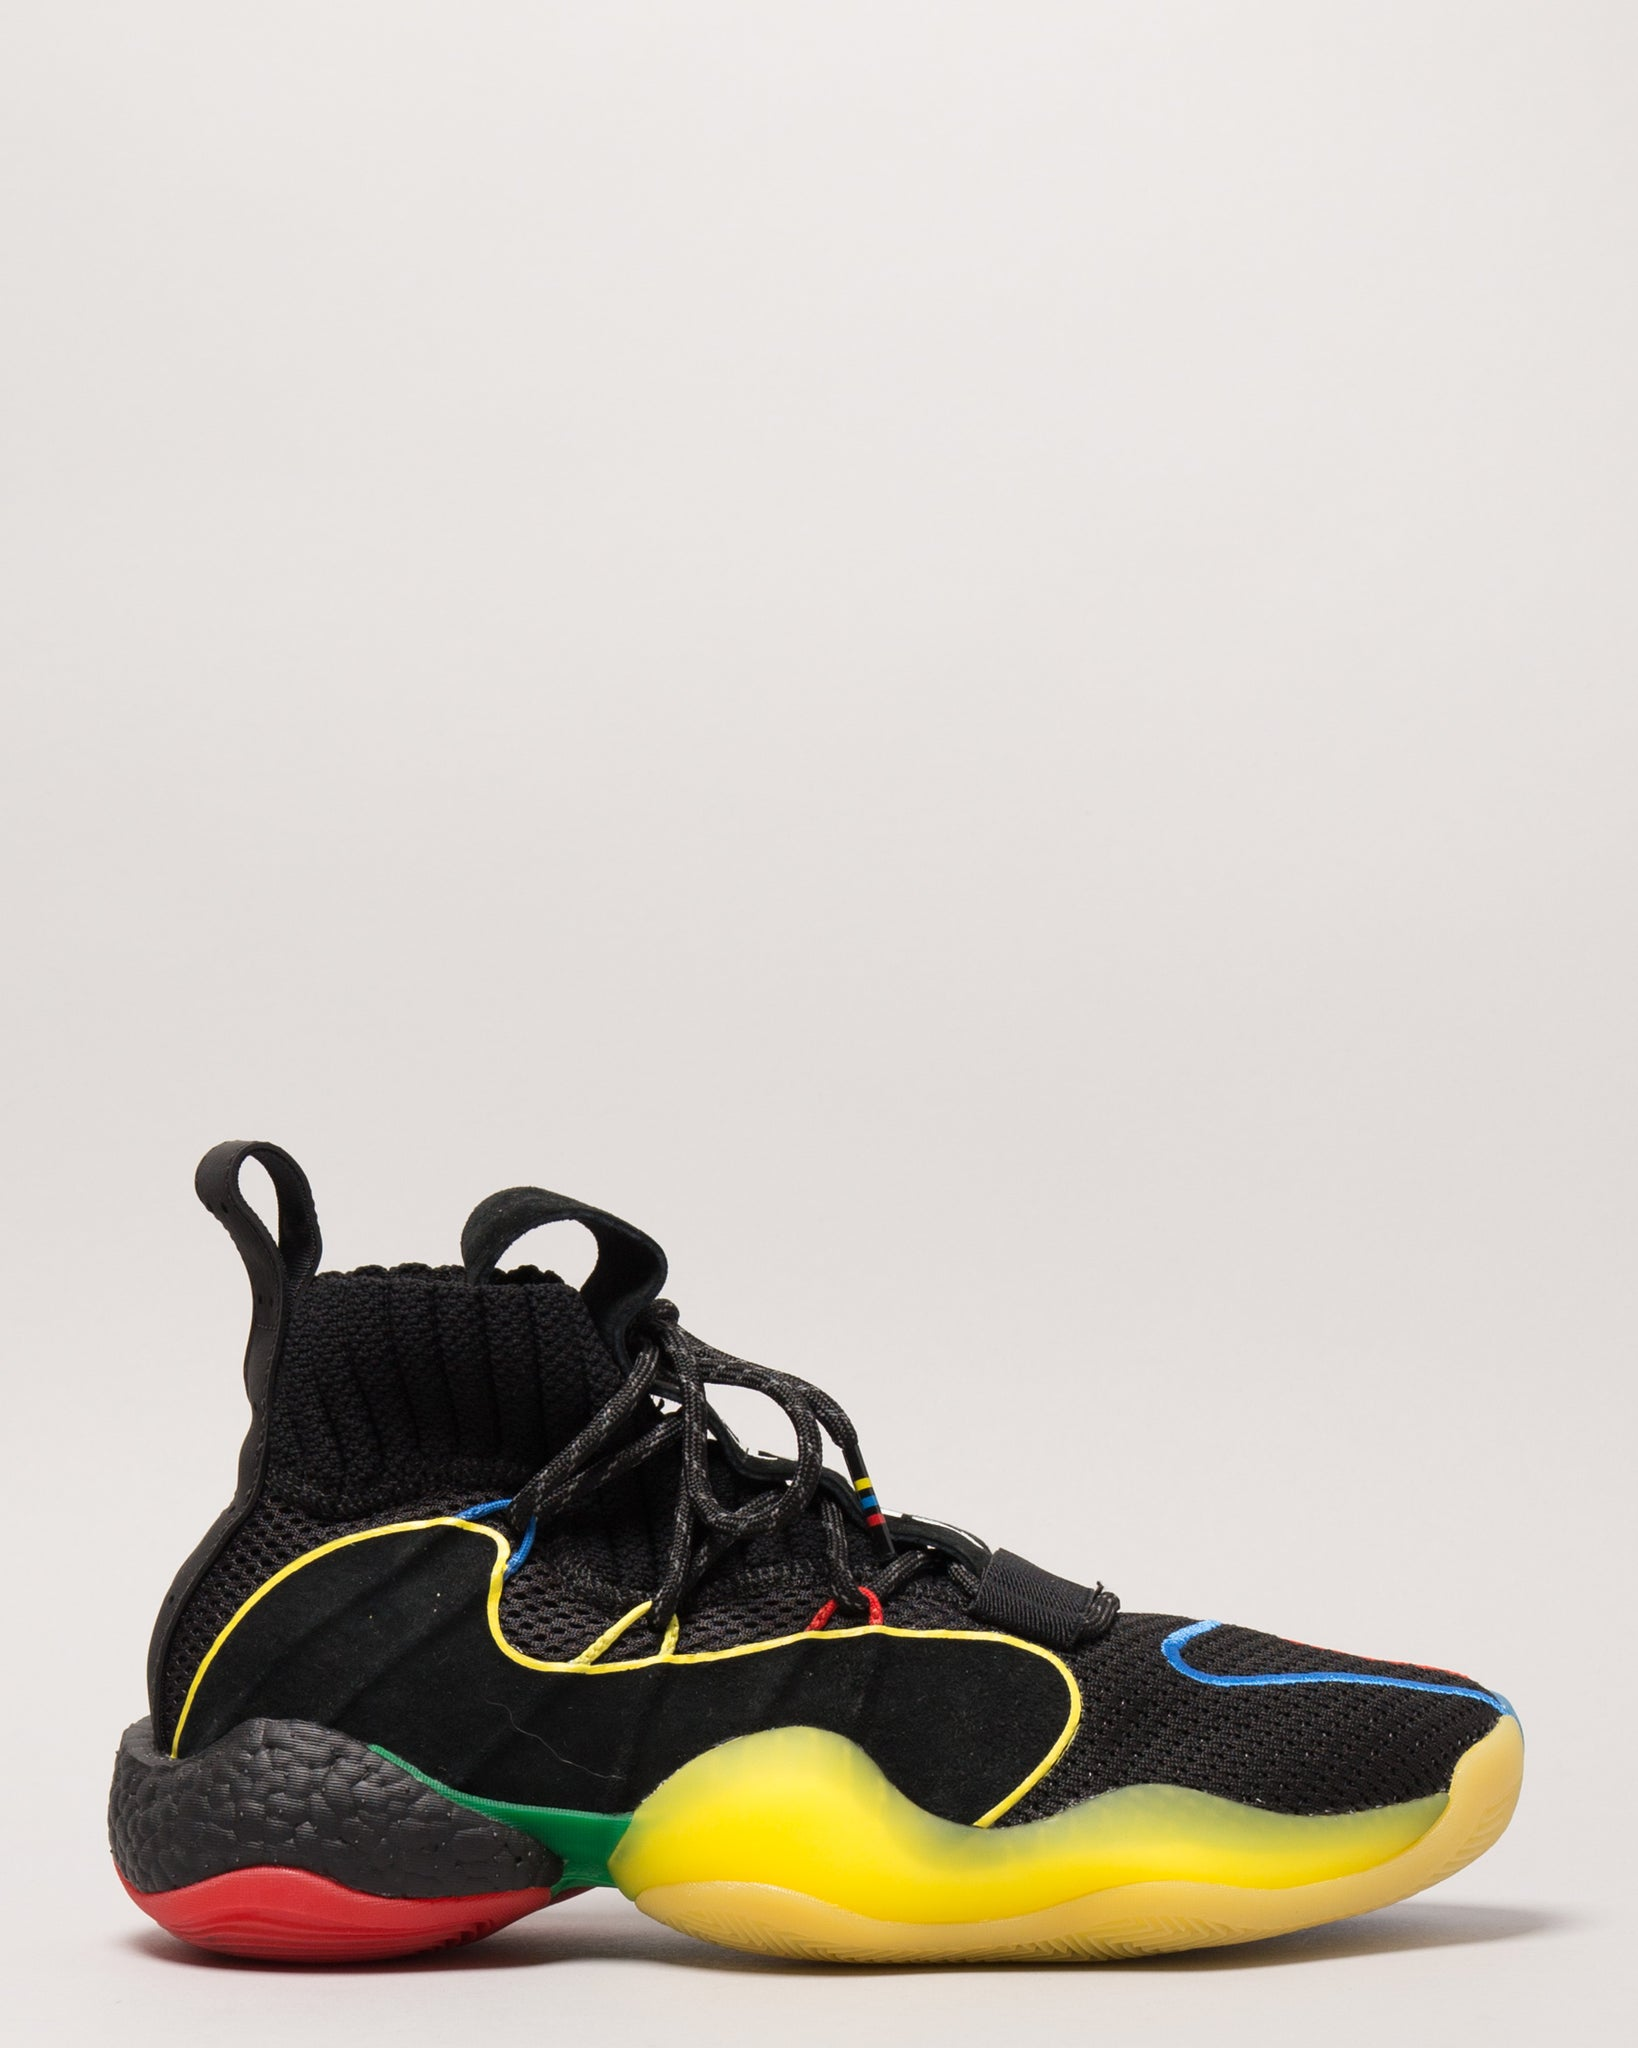 Pharrell Williams BYW LVL X Core Black/Green/Red/Bright Royal/Bright Yellow